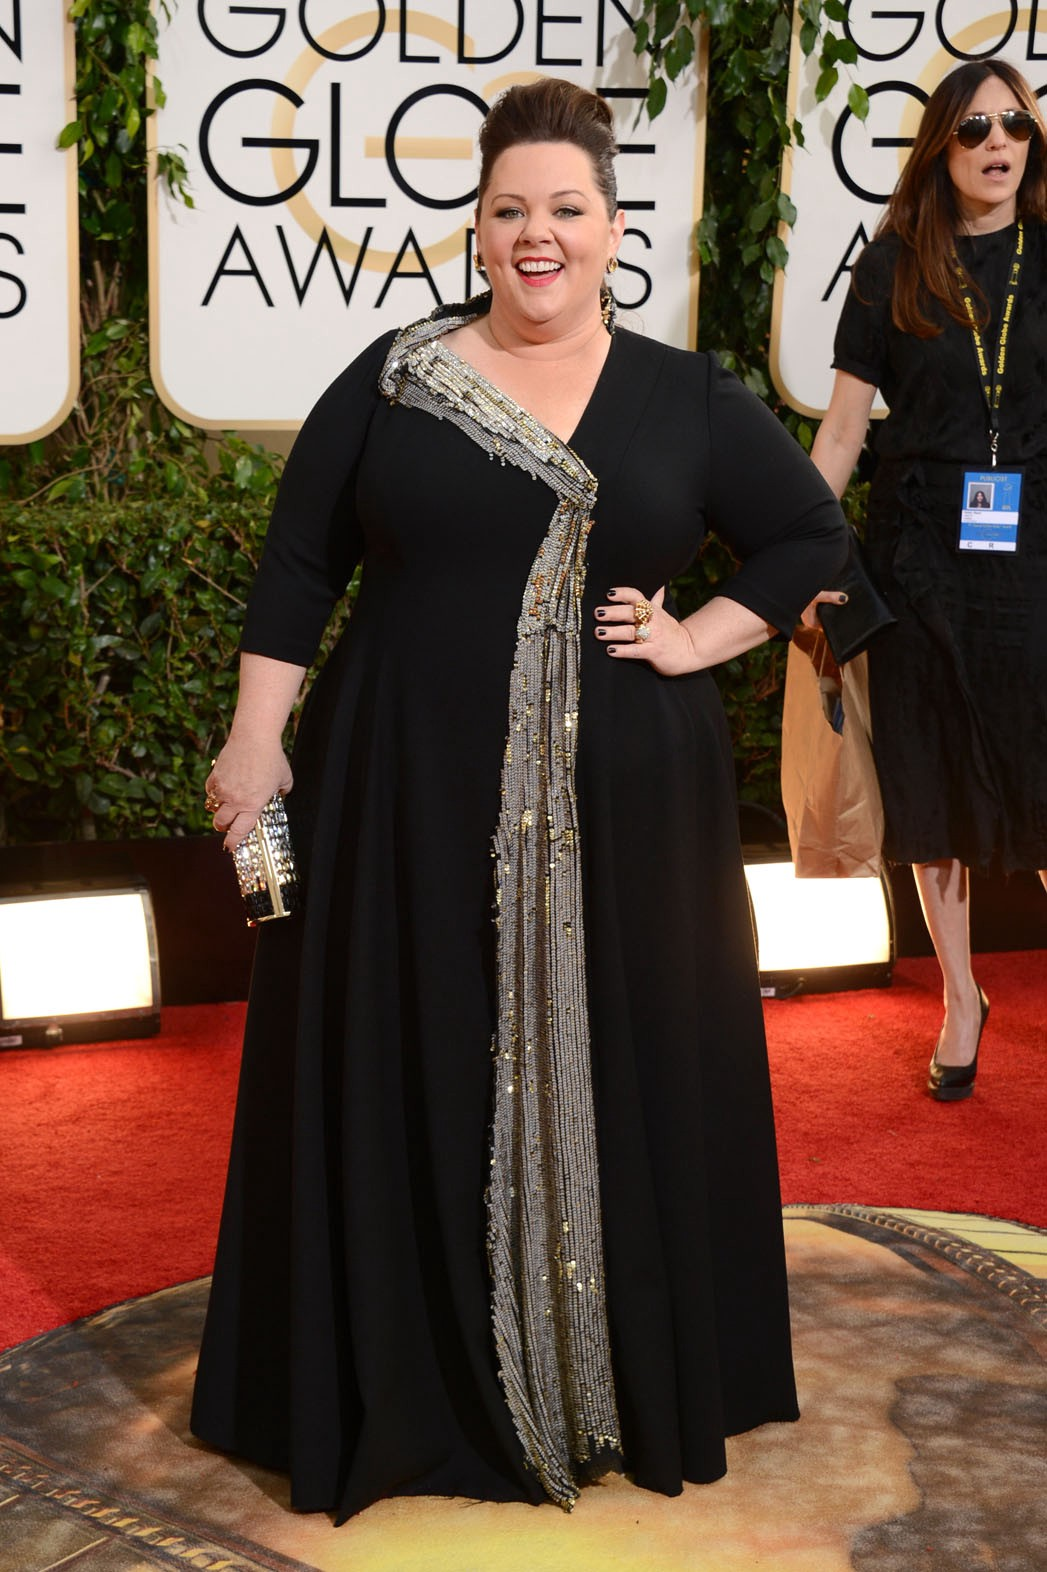 Modest dresses at the 2014 Golden Globes - Mode-sty: Fashion ...